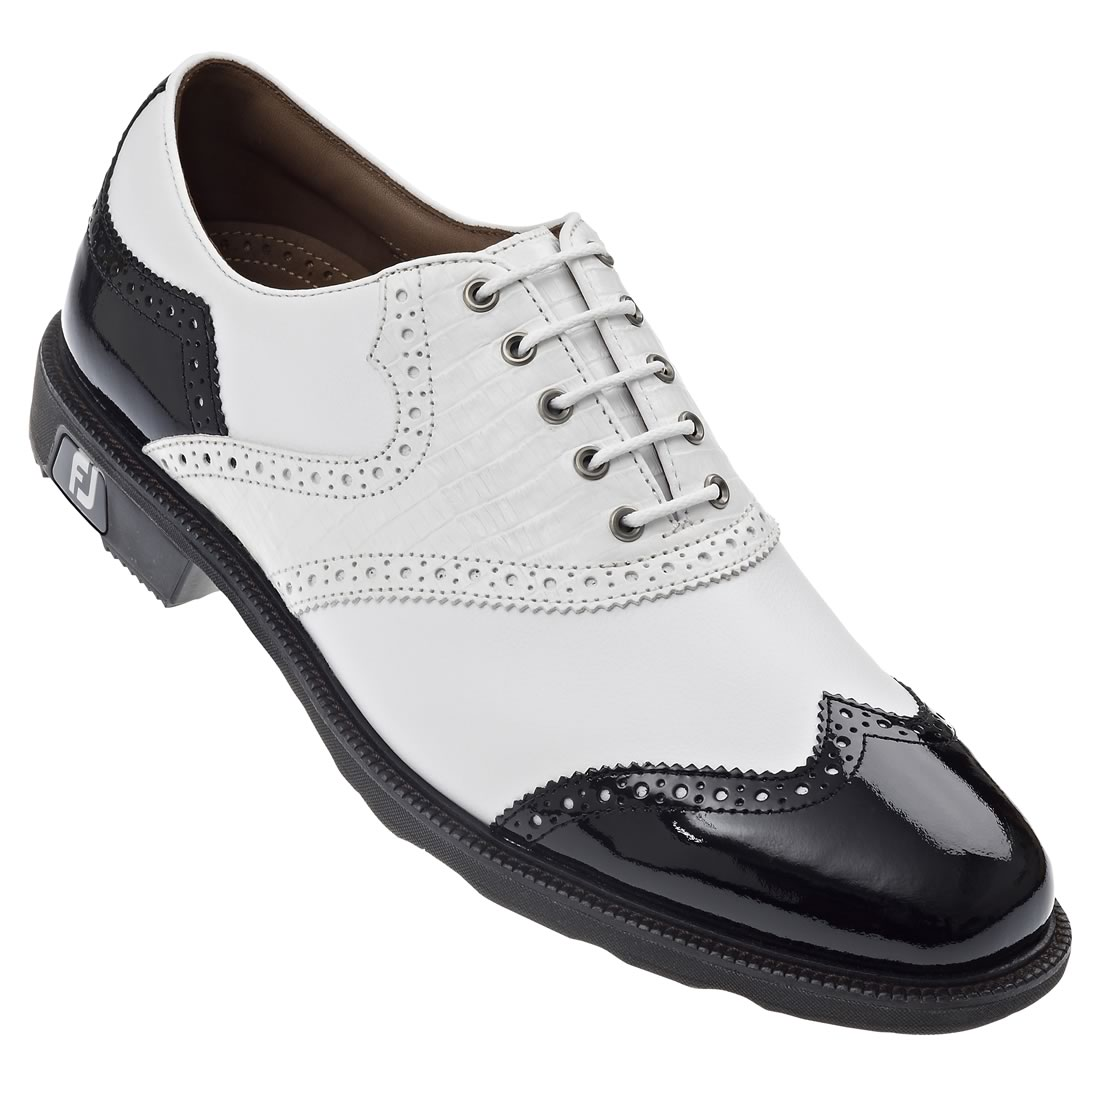 Footjoy Black And White Golf Shoes